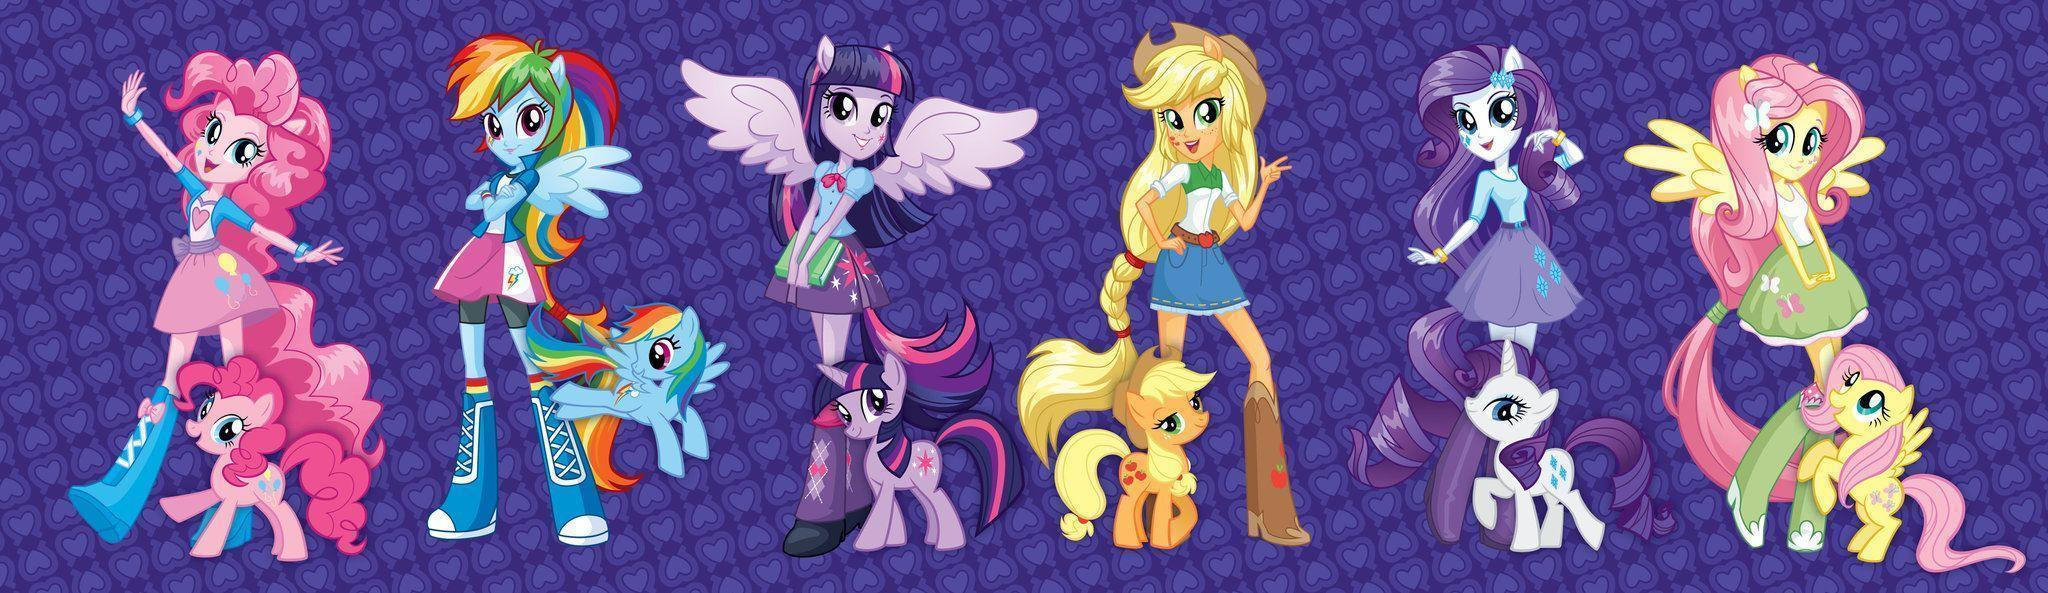 My Little Pony: Equestria Girls image Equestria Girls!!! HD